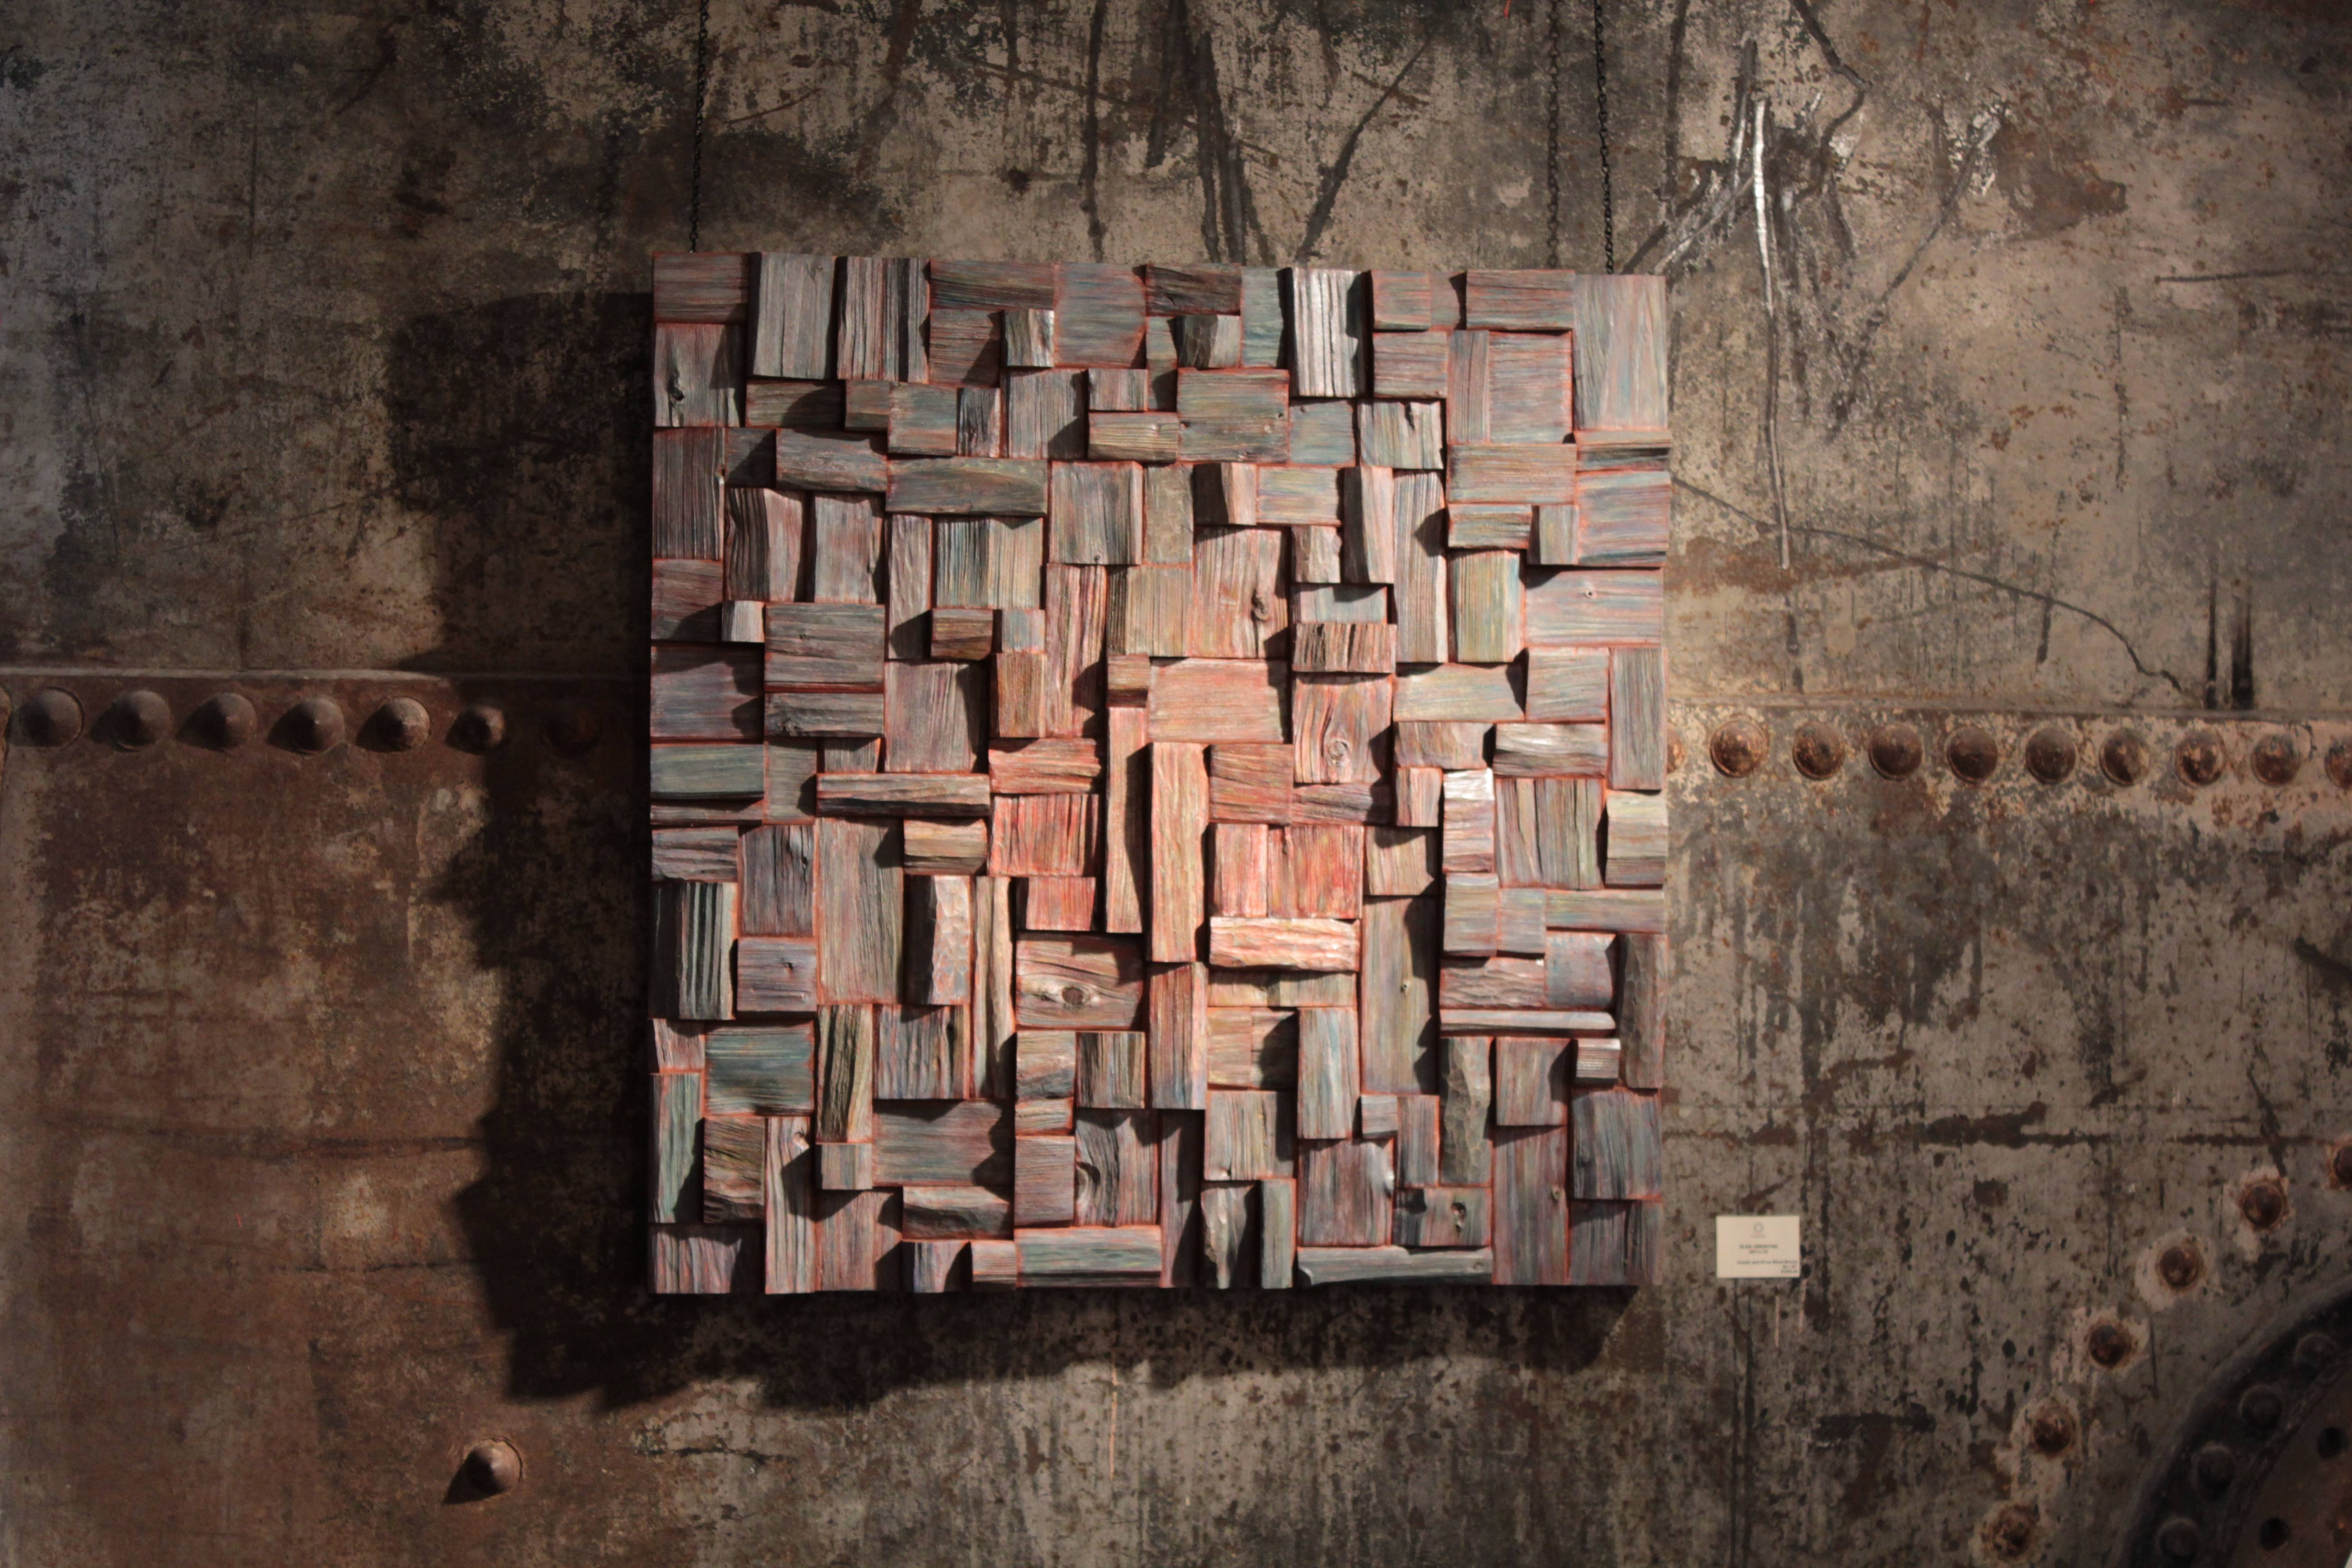 Eccentricity Of Wood | Abstract Wooden Wall Sculptures Inside 2017 Outdoor Wall Sculpture Art (View 19 of 20)